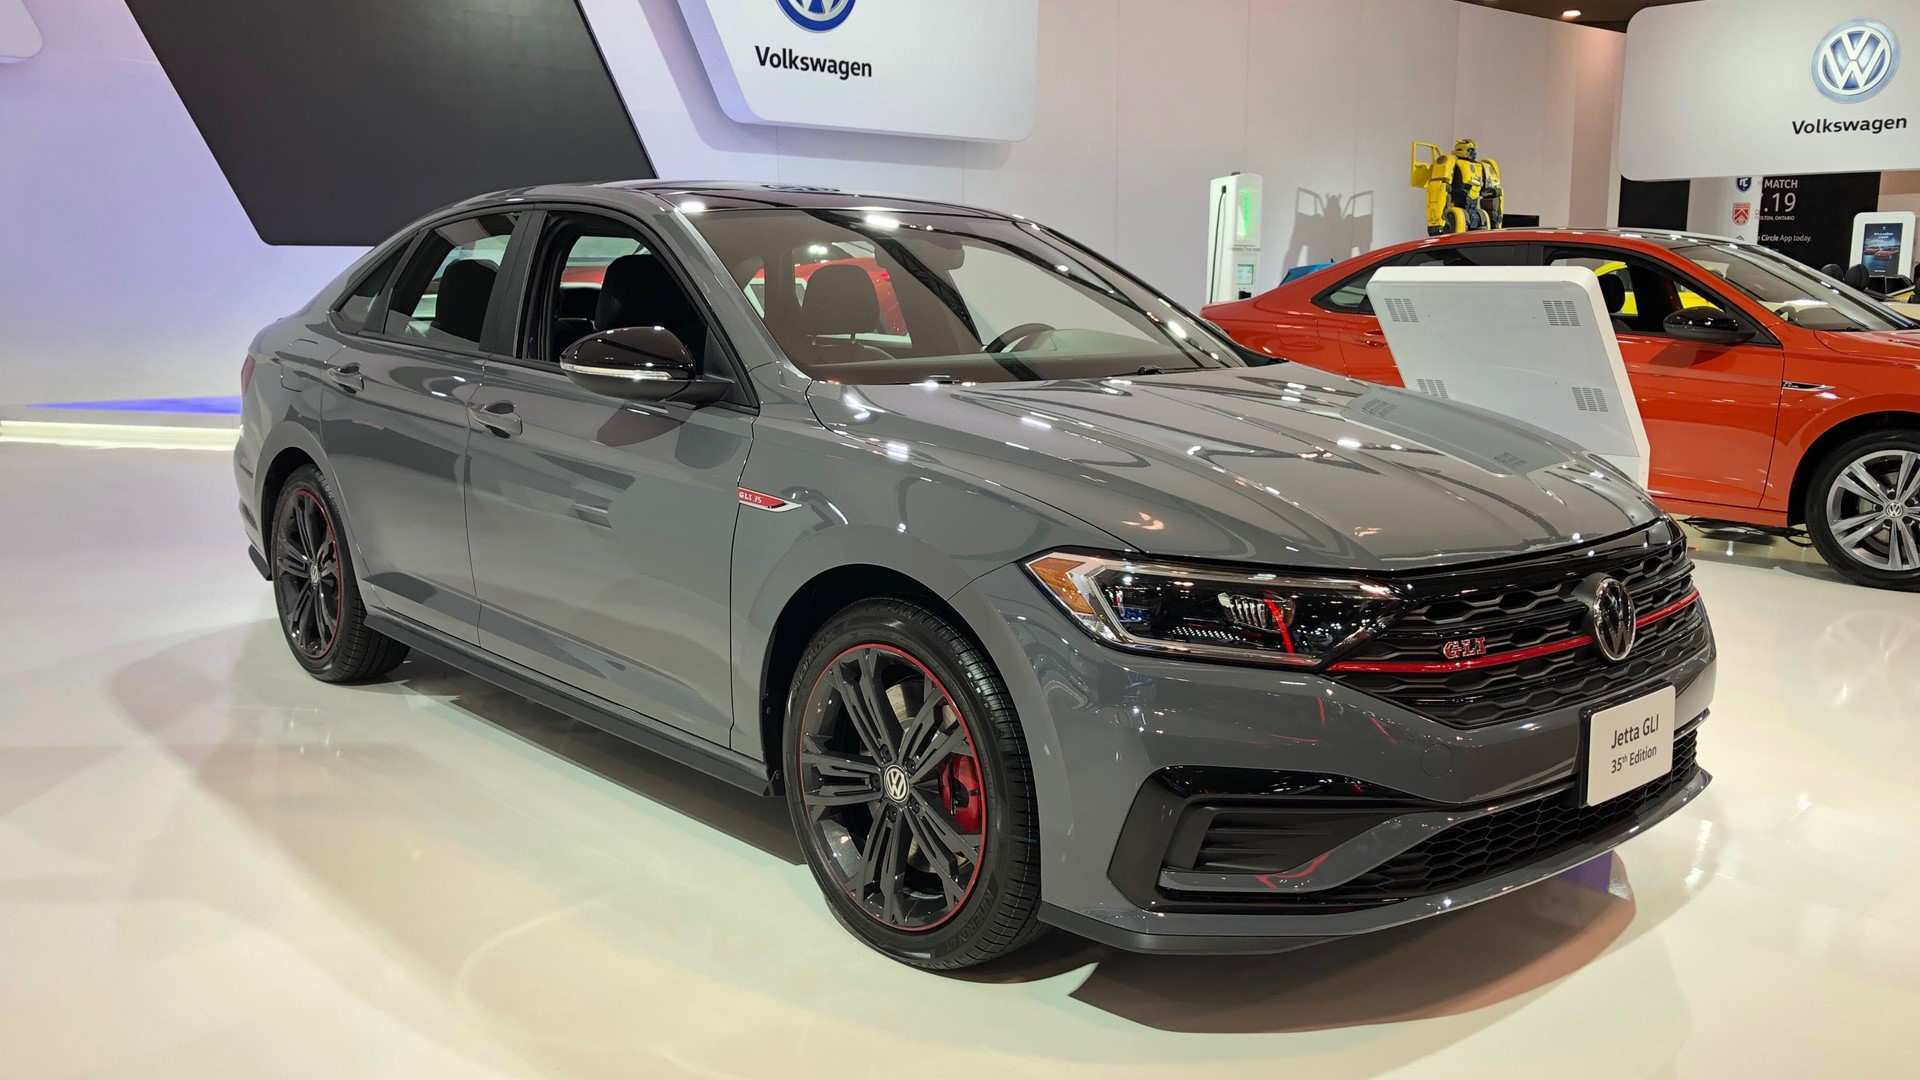 89 New 2019 Volkswagen Jetta Gli Price Design And Review